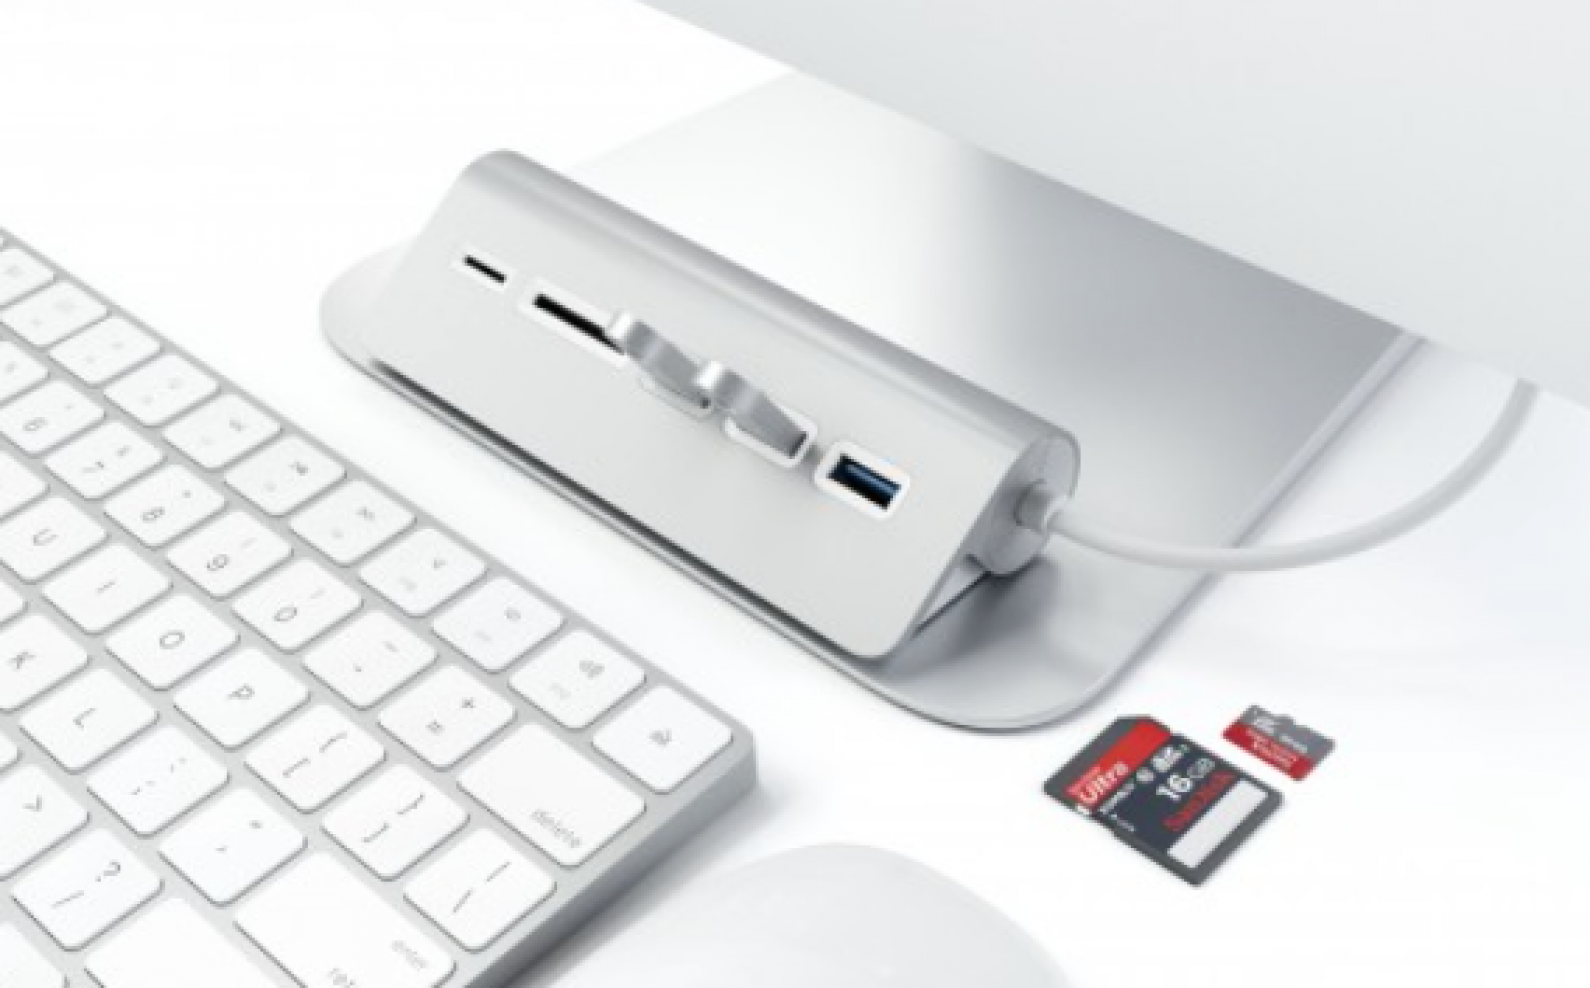 Review: Satechi Card Reader Hub Adds Back the SD Card Reader